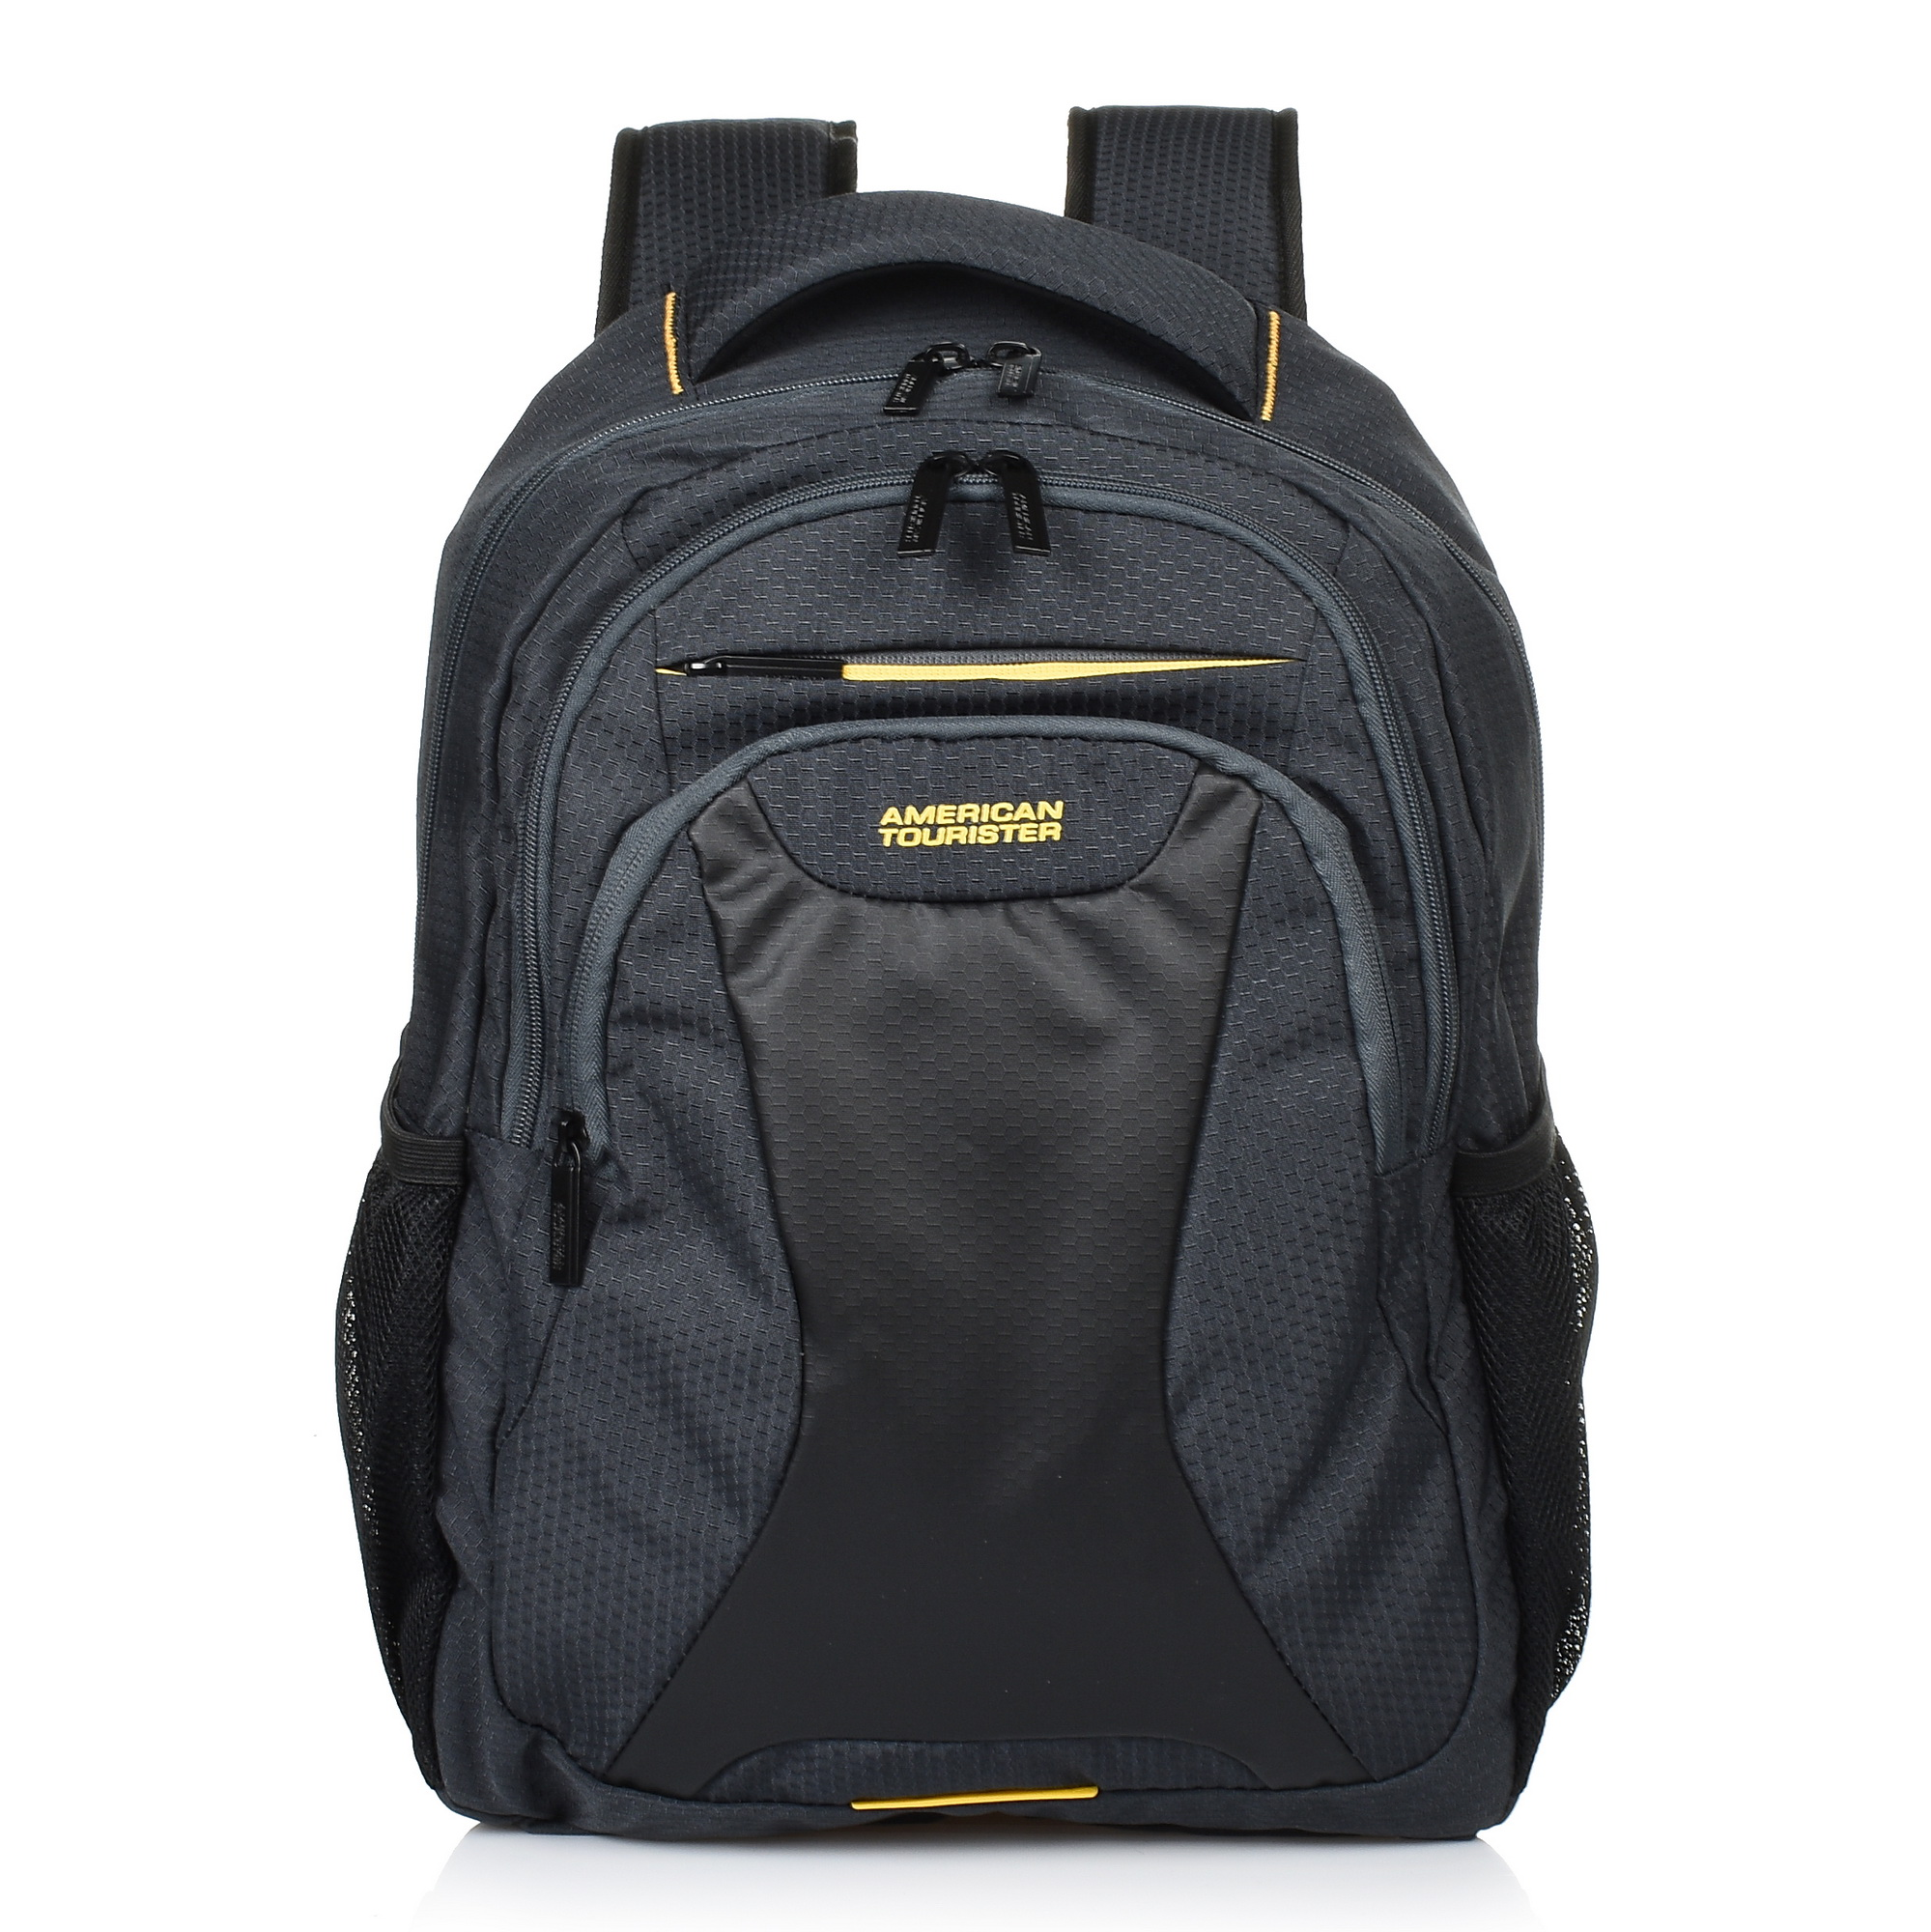 625895fd32 Σακίδιο Πλάτης American Tourister At Work Laptop BP 15.6   Coated ...